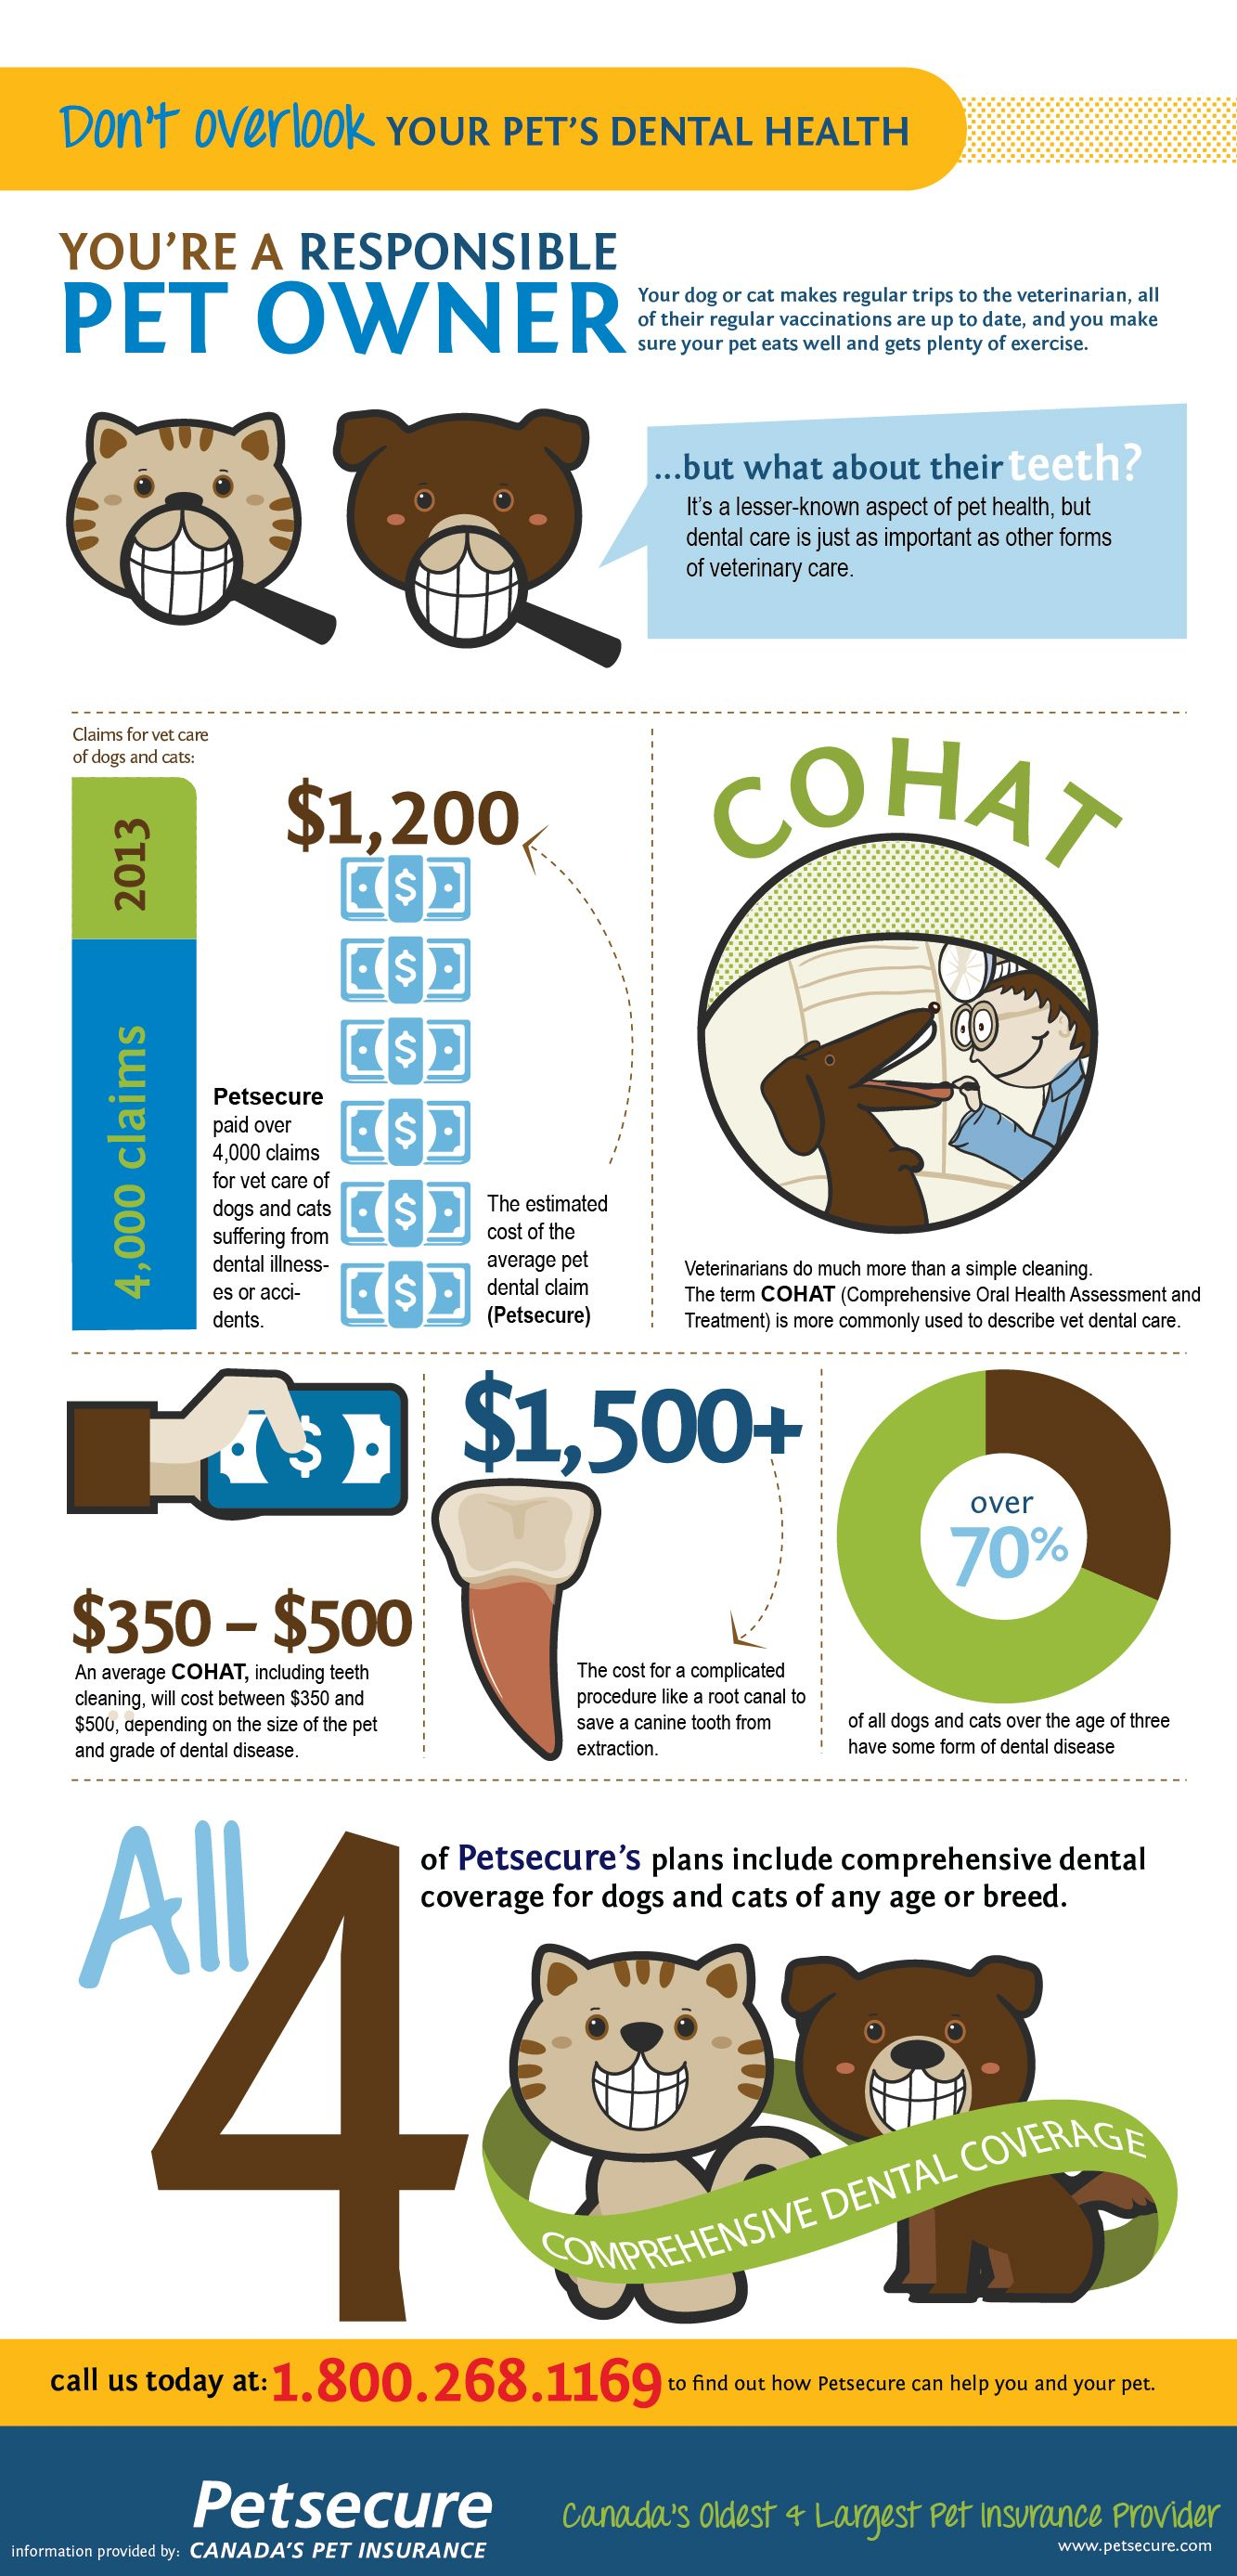 February is Pet Dental Health Month! Take a look at this